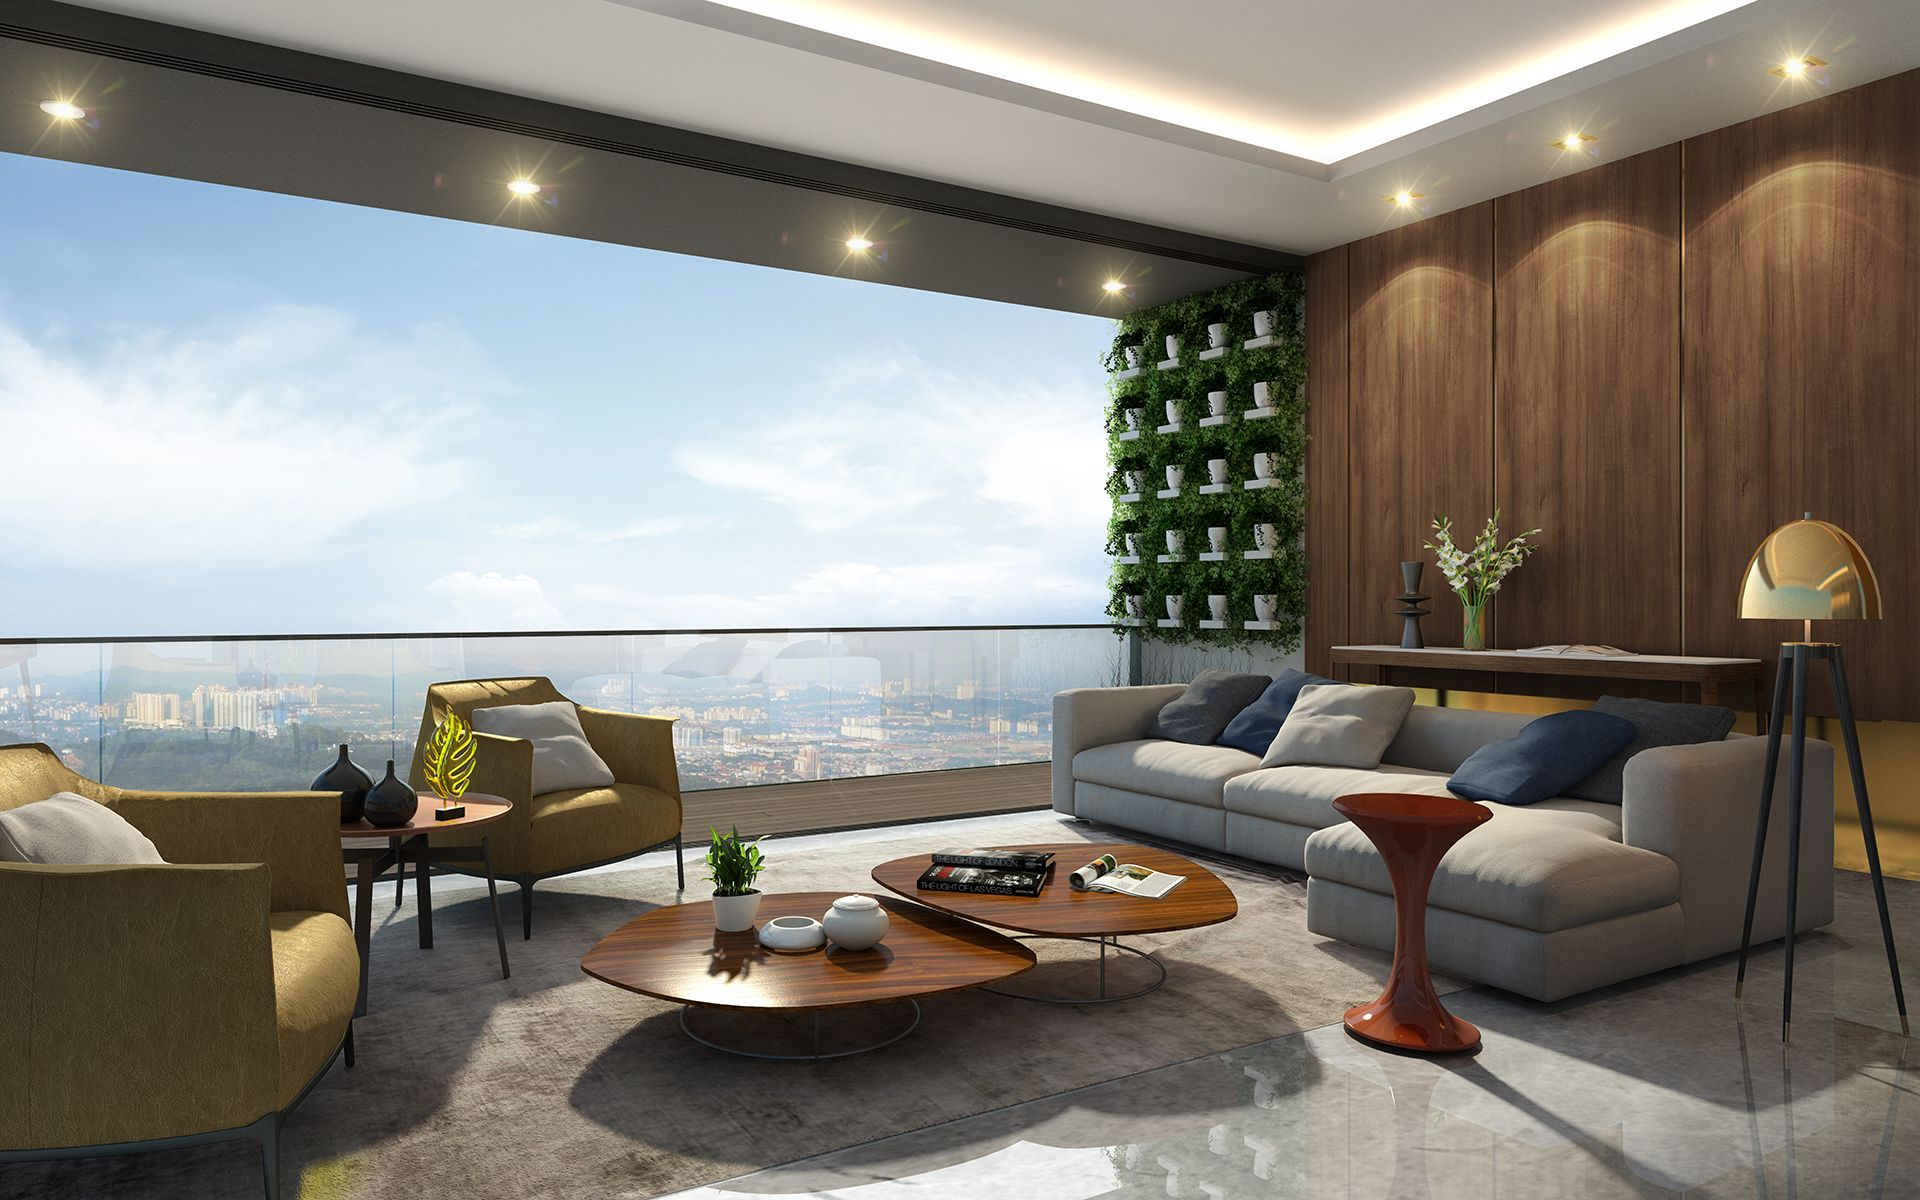 6 Prestigious Properties In Klang Valley That Are Dream Homes Come To Life